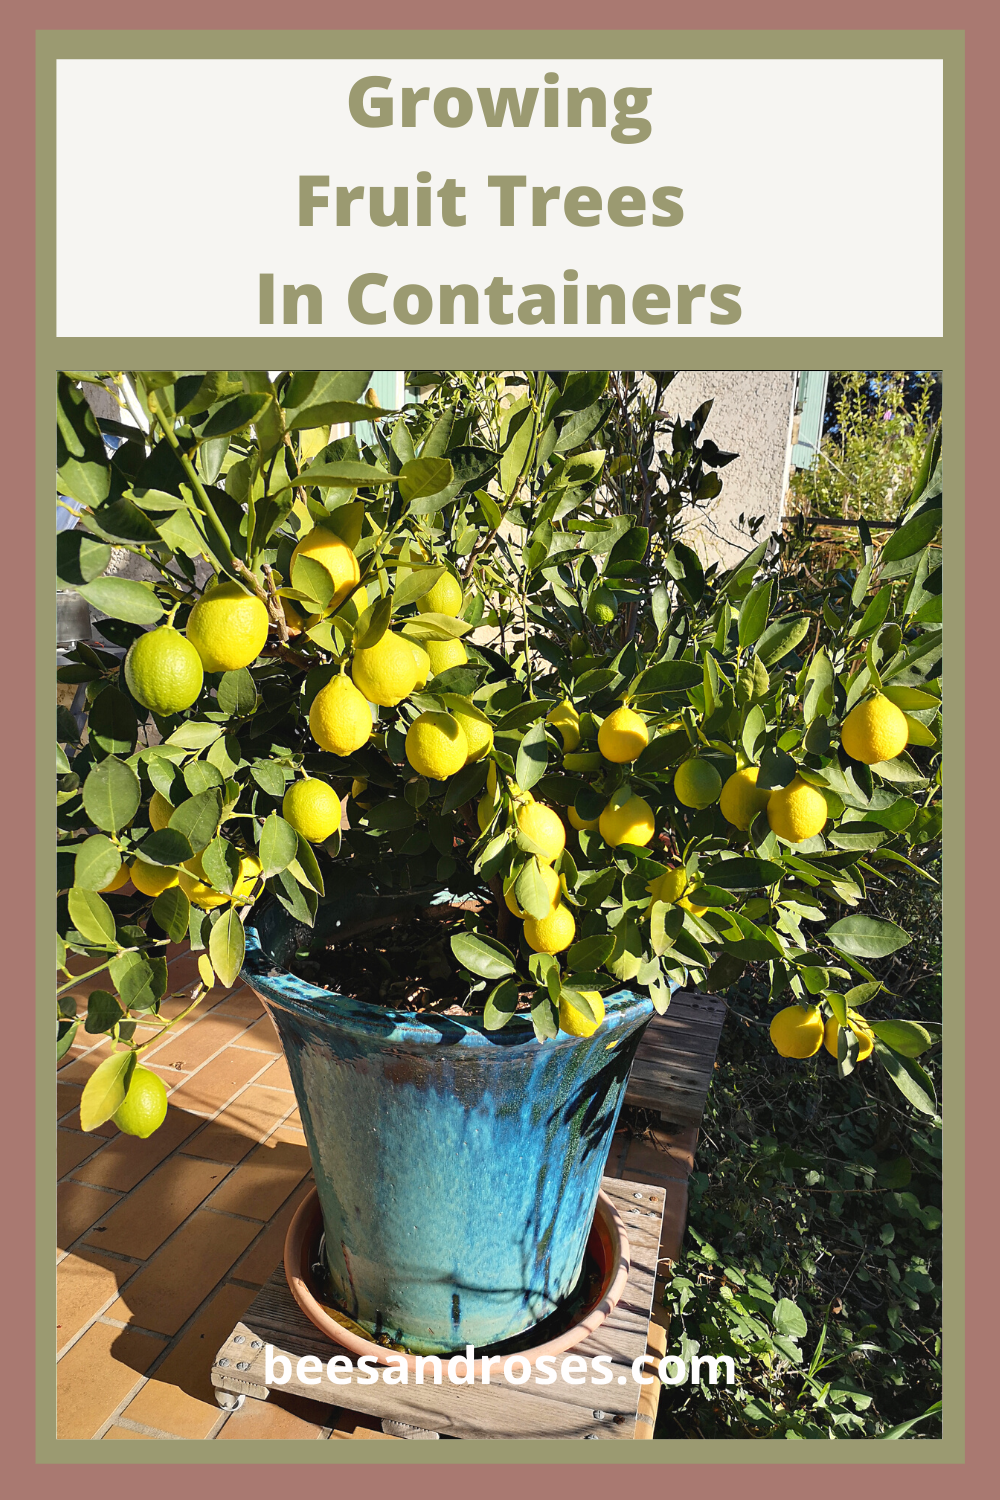 Growing Fruit Trees In Containers What You Need To Know Growing Fruit Trees Fruit Trees In Containers Growing Fruit